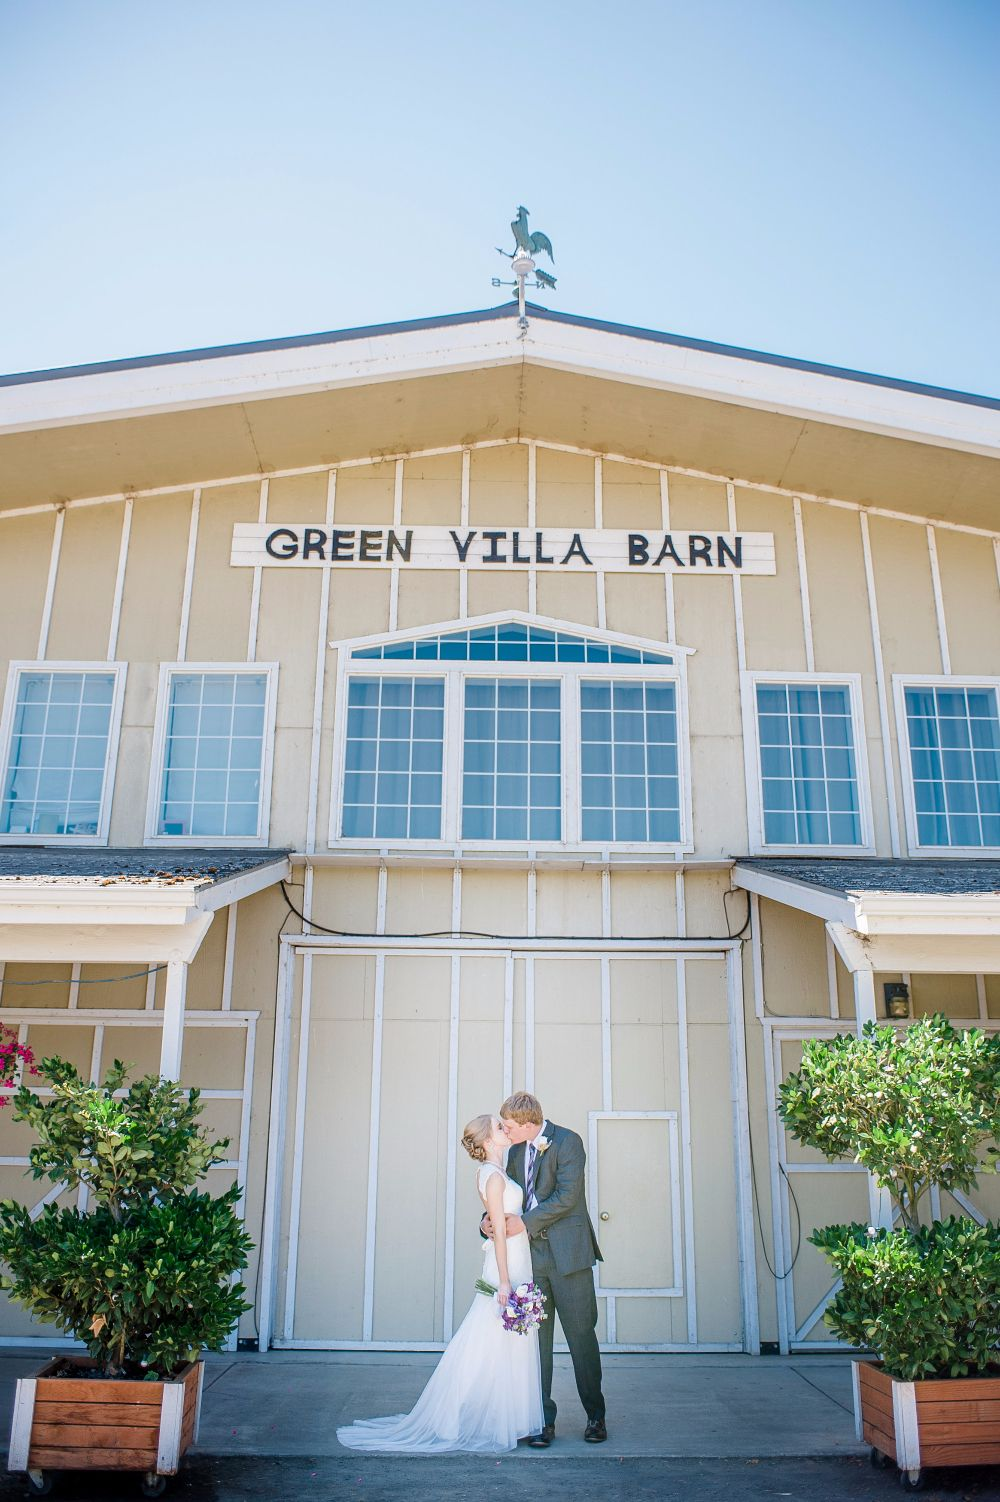 How To Plan An Amazing Oregon Barn Wedding | Oregon ...